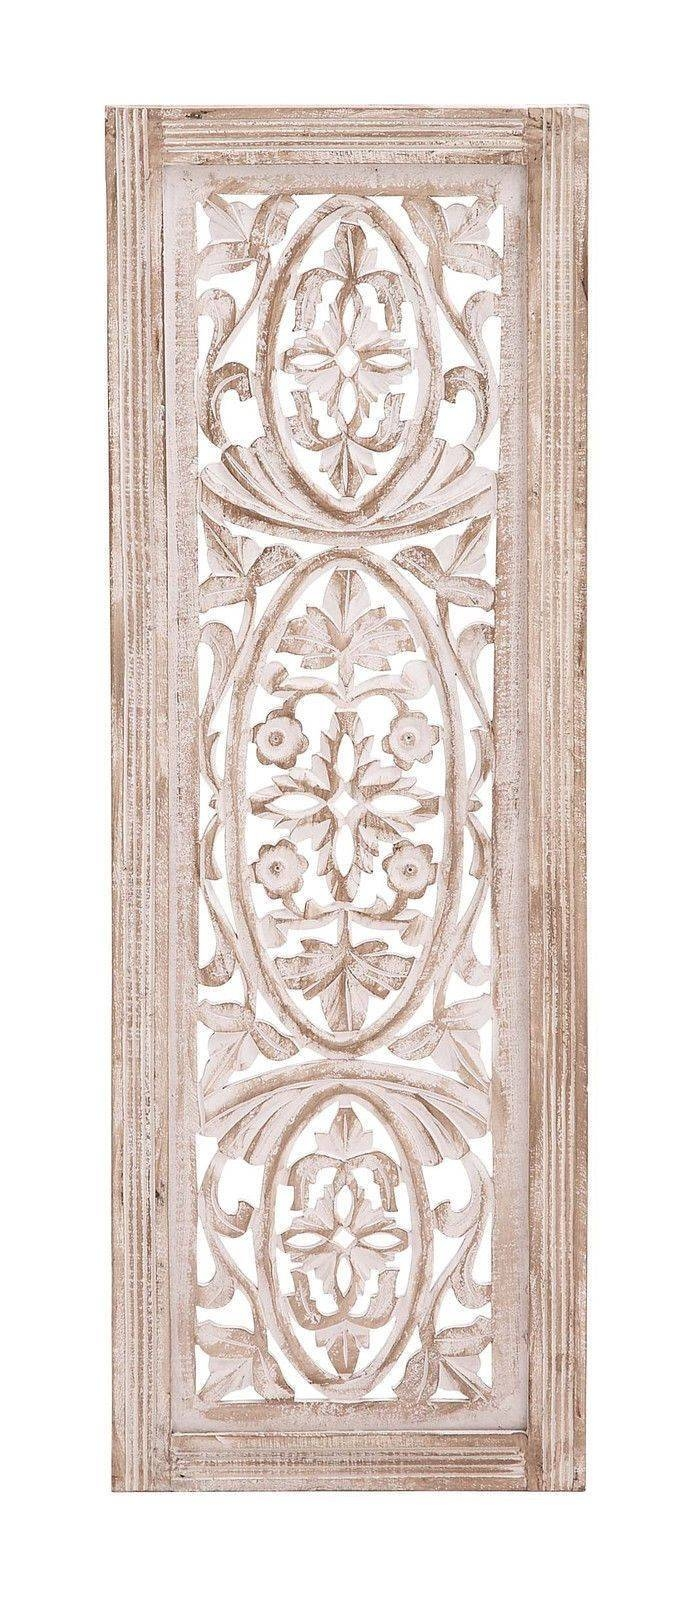 Fascinating Carved Wood Wall Art Panels Carved Wood Wall Download Pertaining To Most Current Wood Carved Wall Art Panels (View 9 of 25)